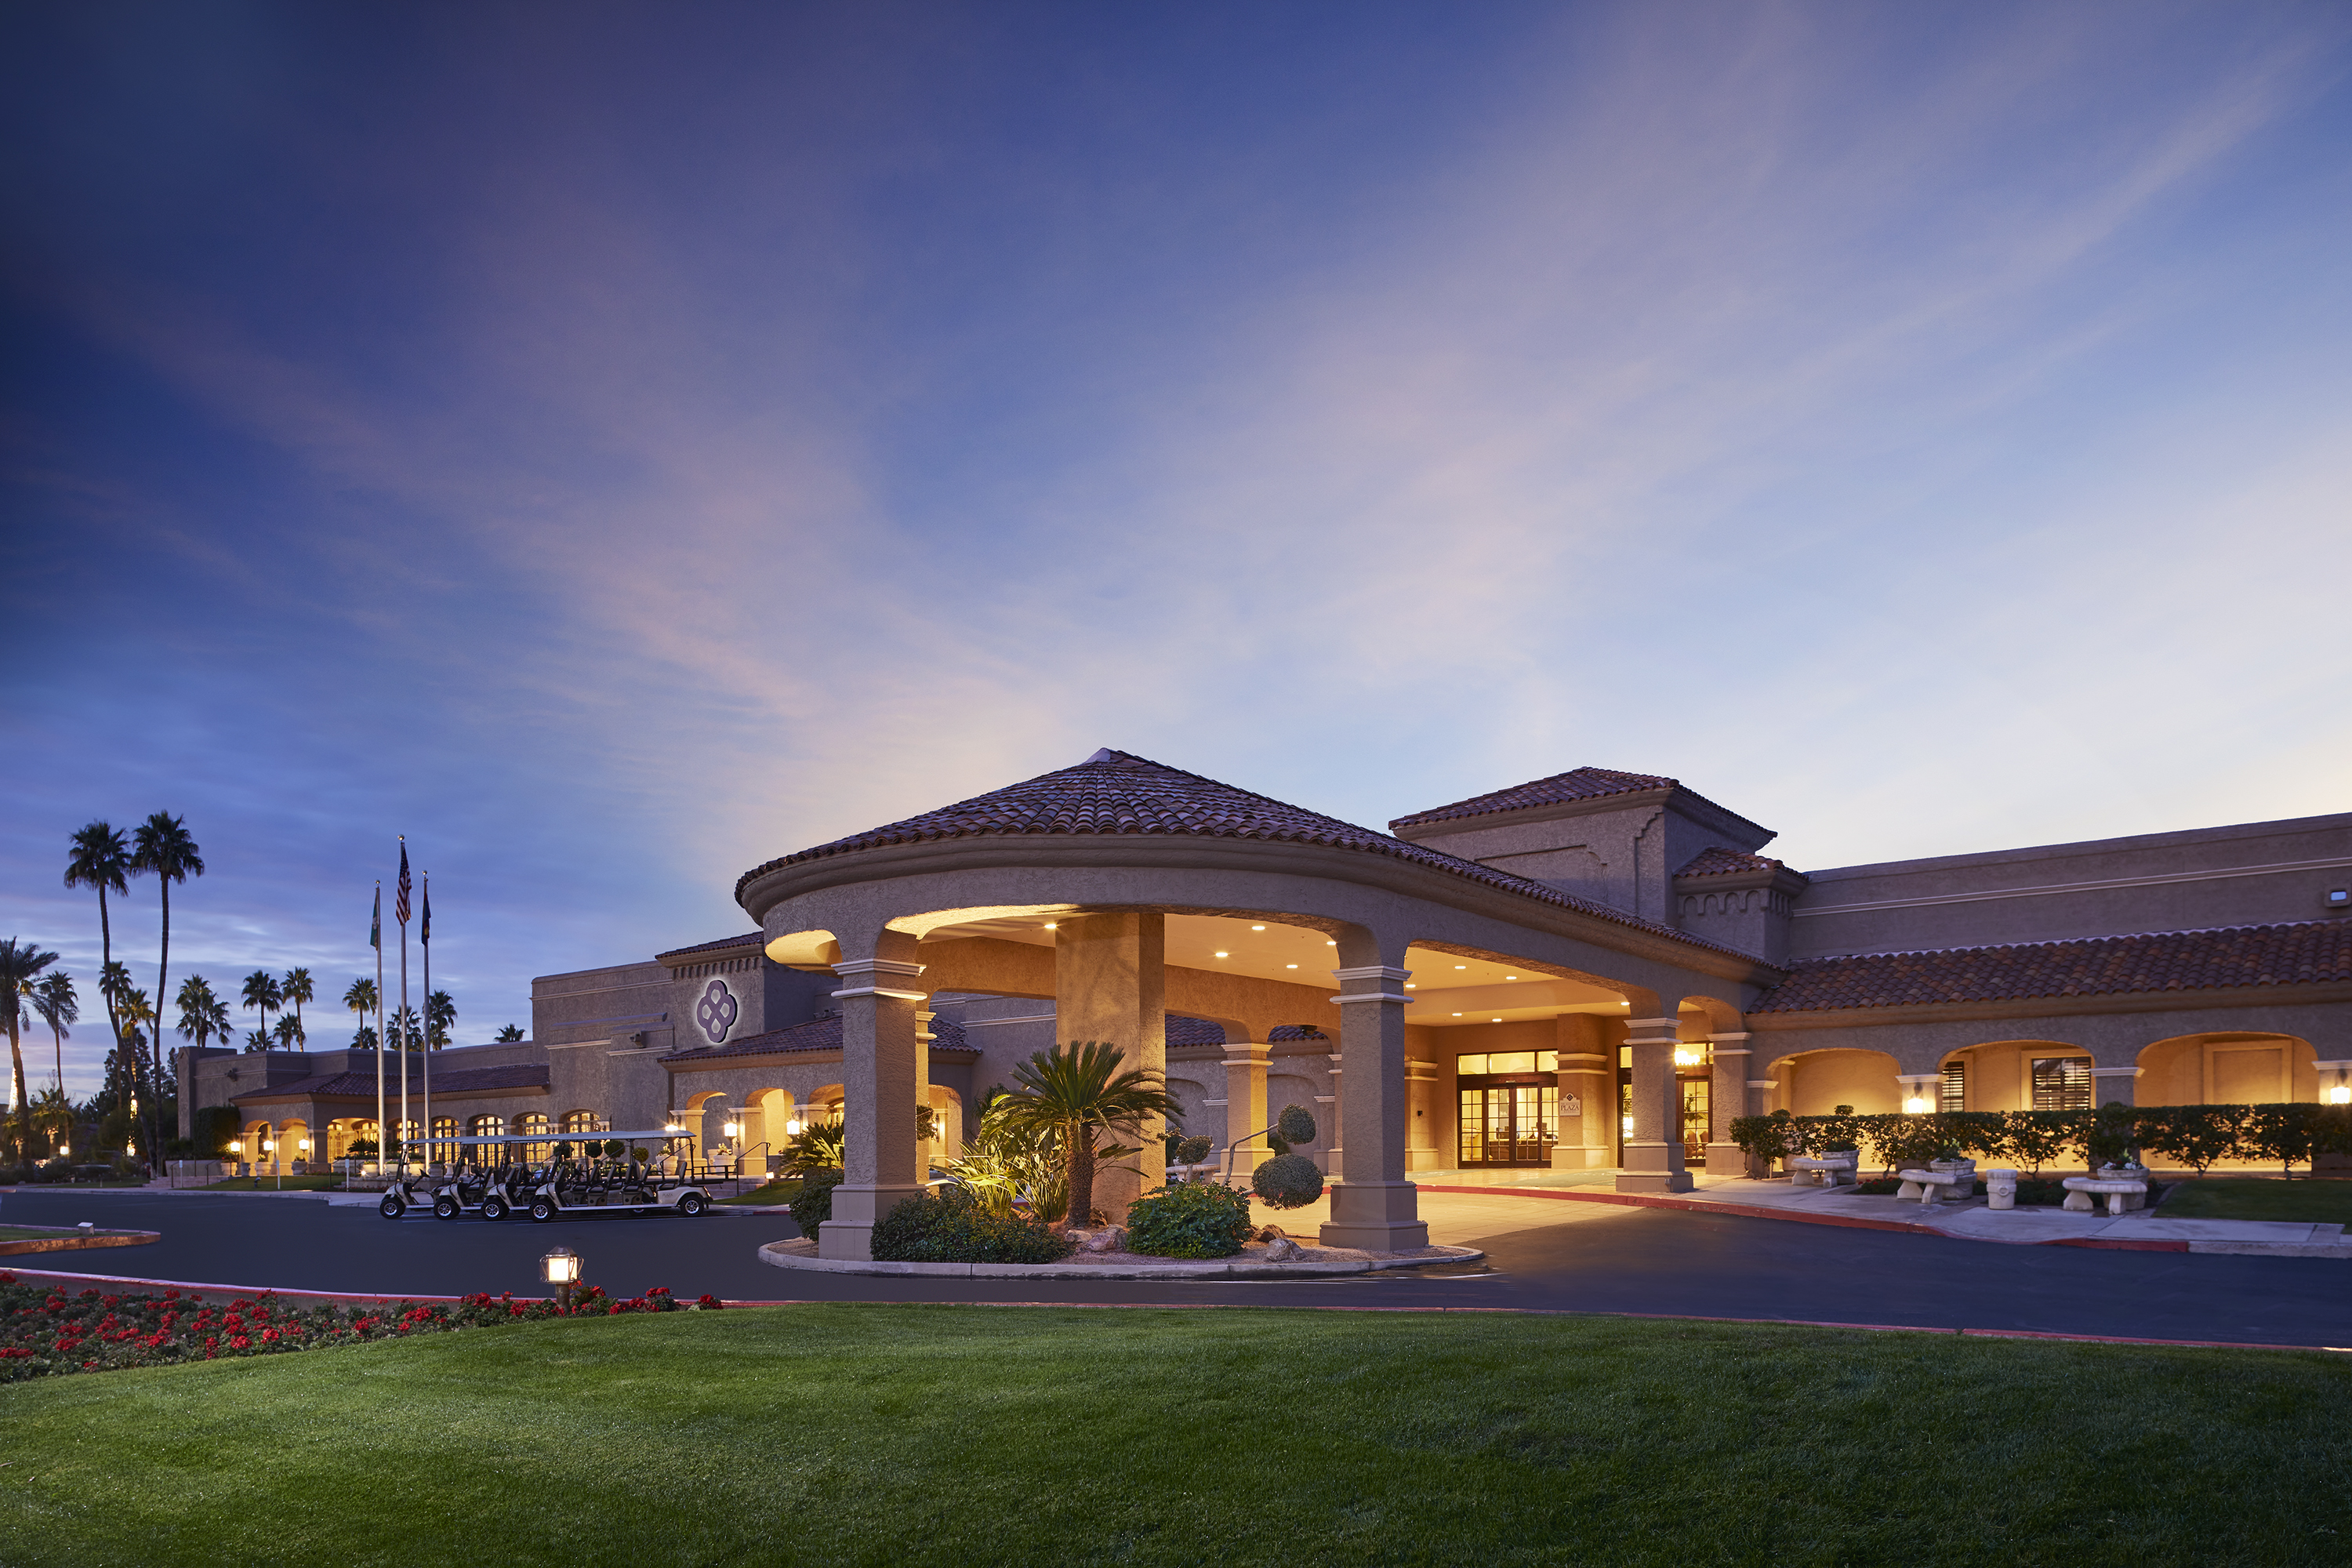 scottsdale plaza resort jobs overview scottsdale plaza resort